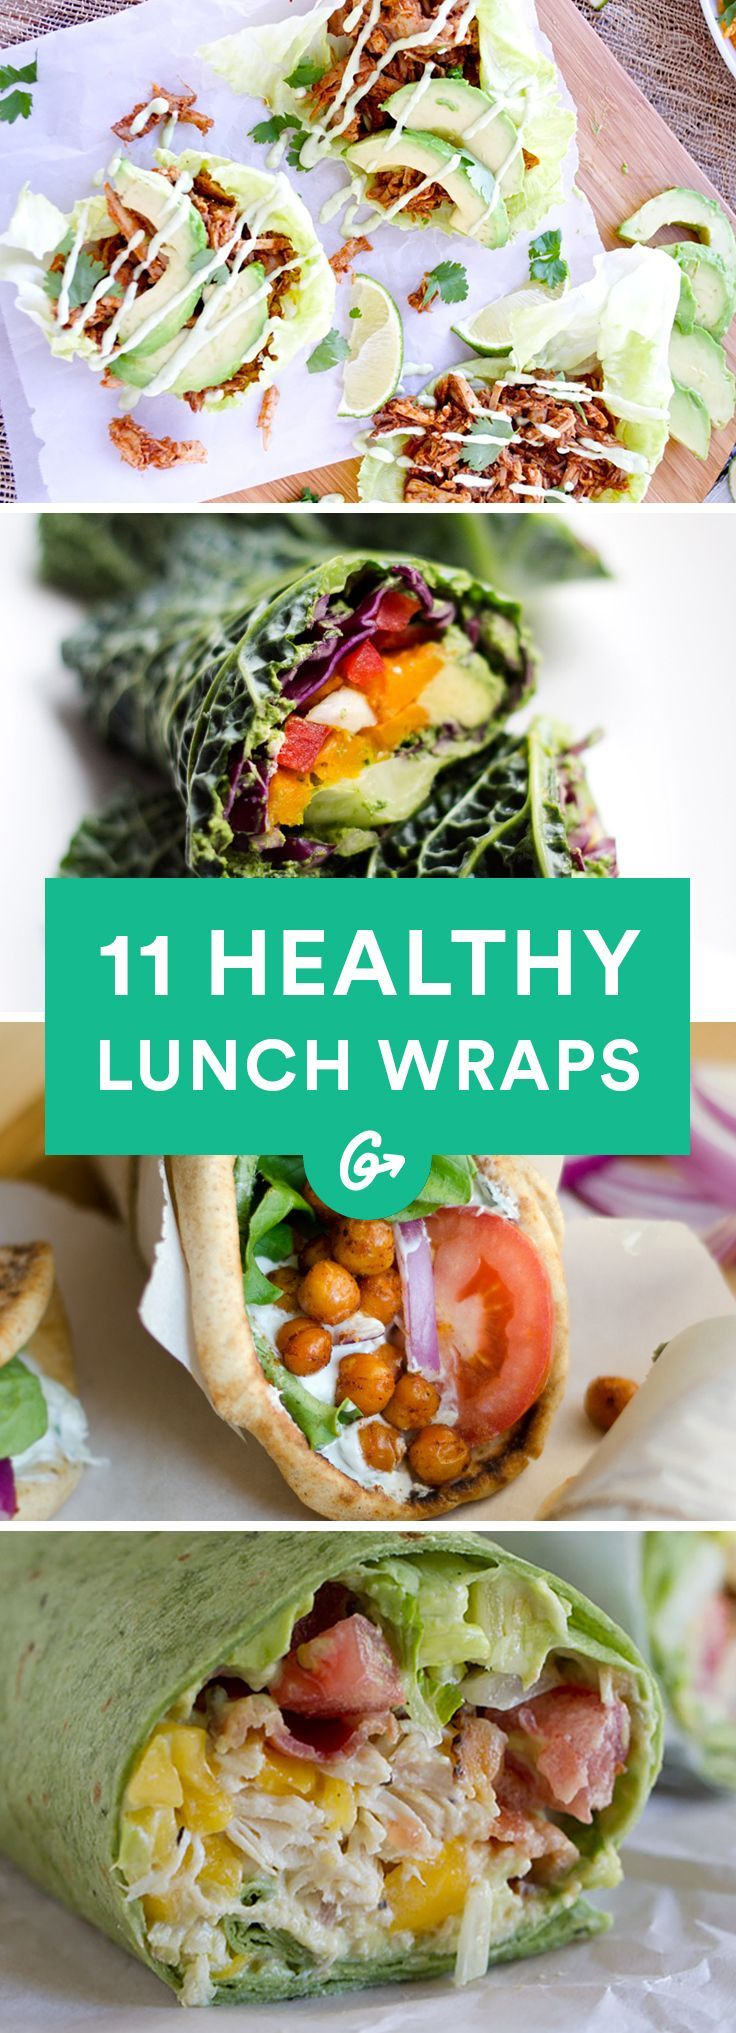 576 best school packable lunch images on pinterest healthy